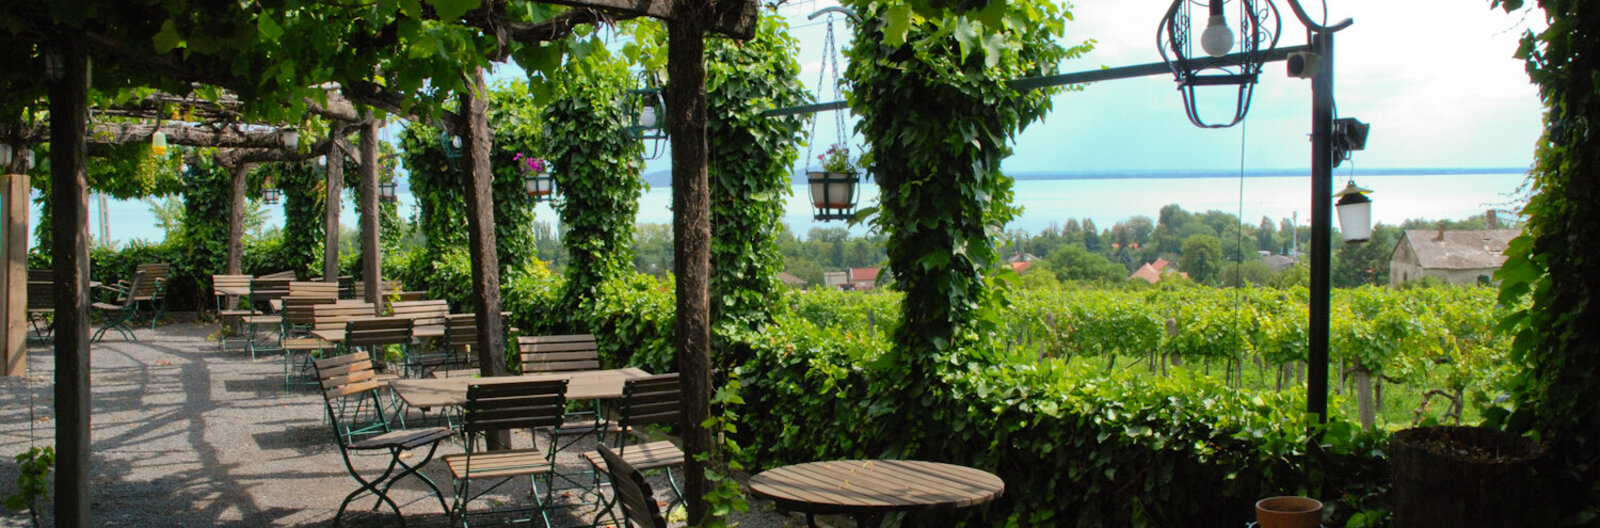 Drink wine in an arboretum! - 10 must-see wine terraces at Lake Balaton